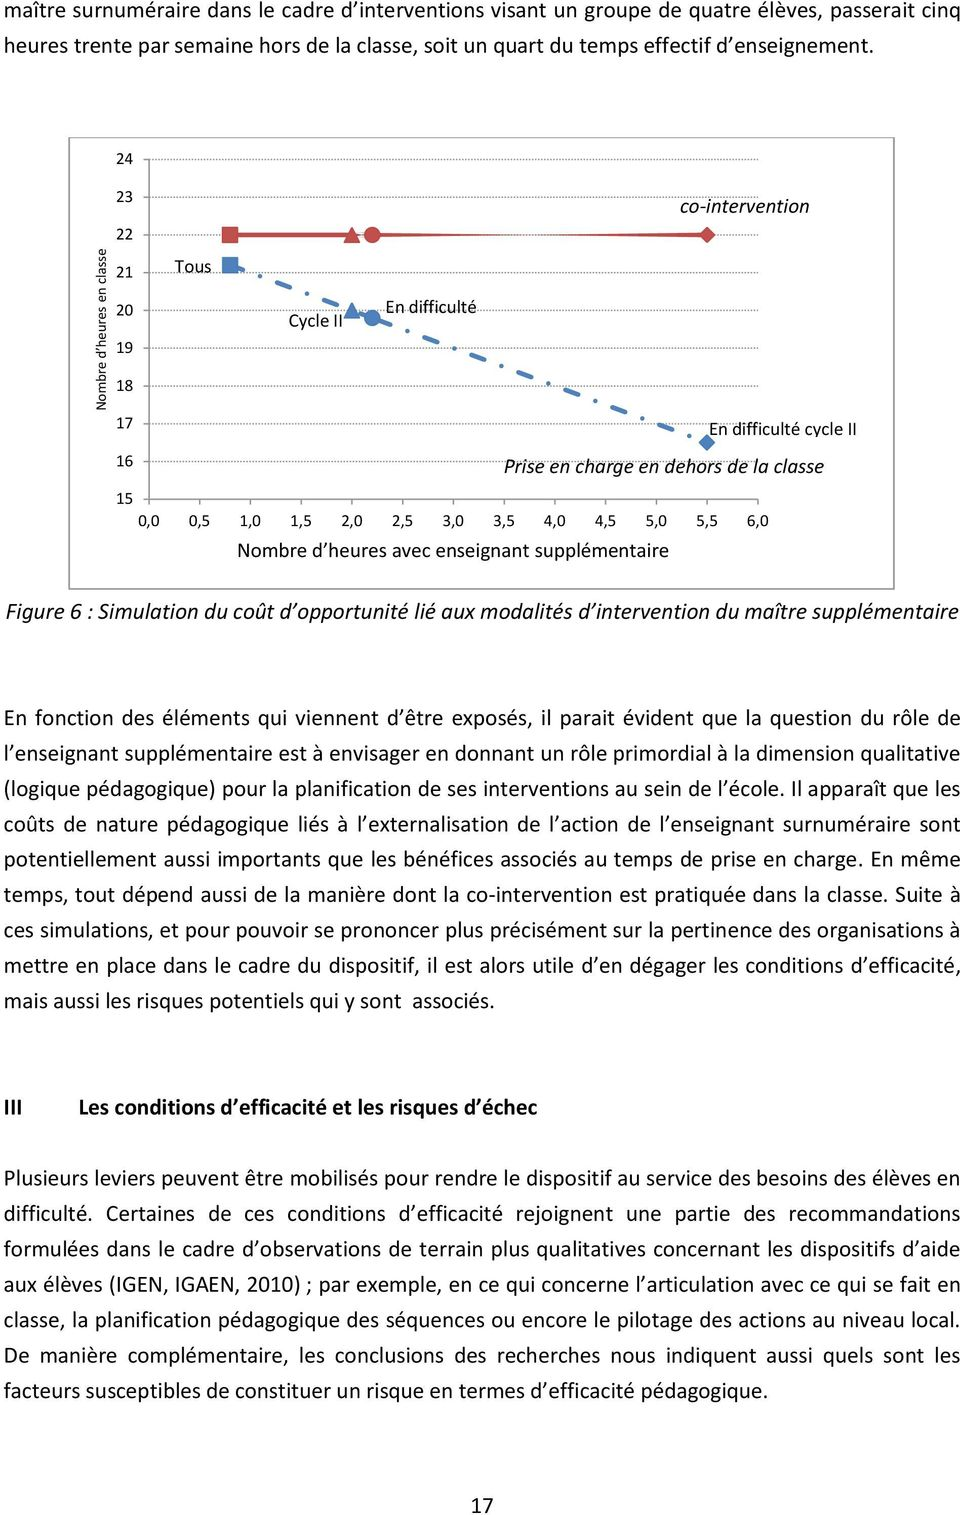 24 23 22 21 Tous co-intervention 20 19 18 Cycle II En difficulté 17 En difficulté cycle II 16 Prise en charge en dehors de la classe 15 0,0 0,5 1,0 1,5 2,0 2,5 3,0 3,5 4,0 4,5 5,0 5,5 6,0 Nombre d